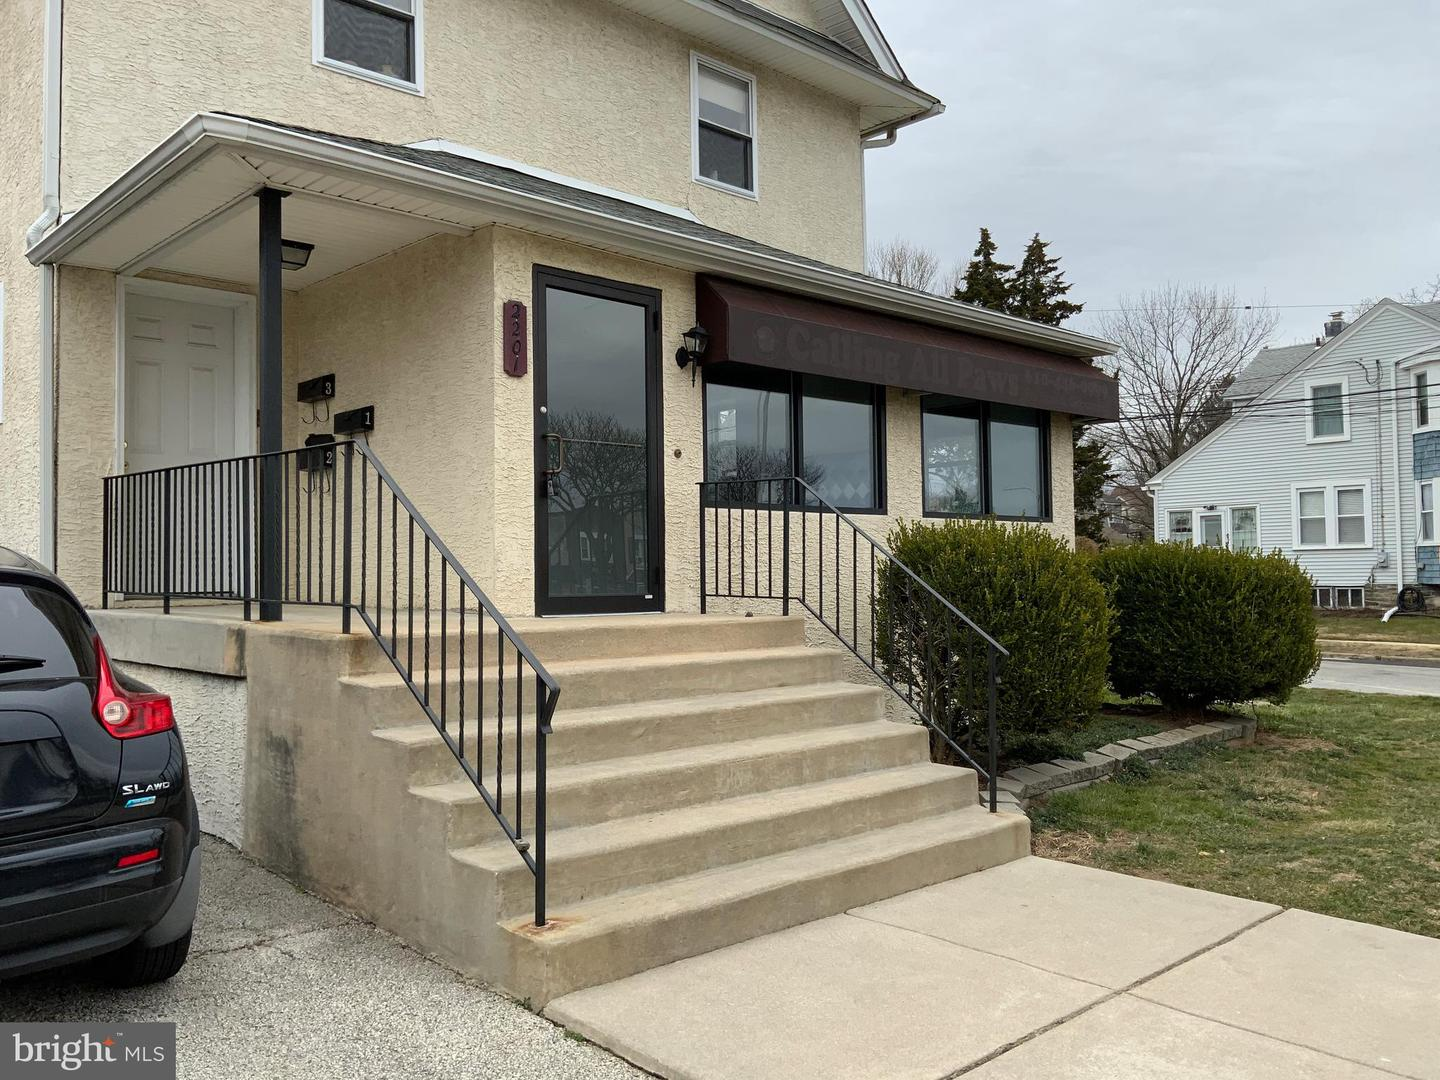 2201 Darby Road Havertown, PA 19083